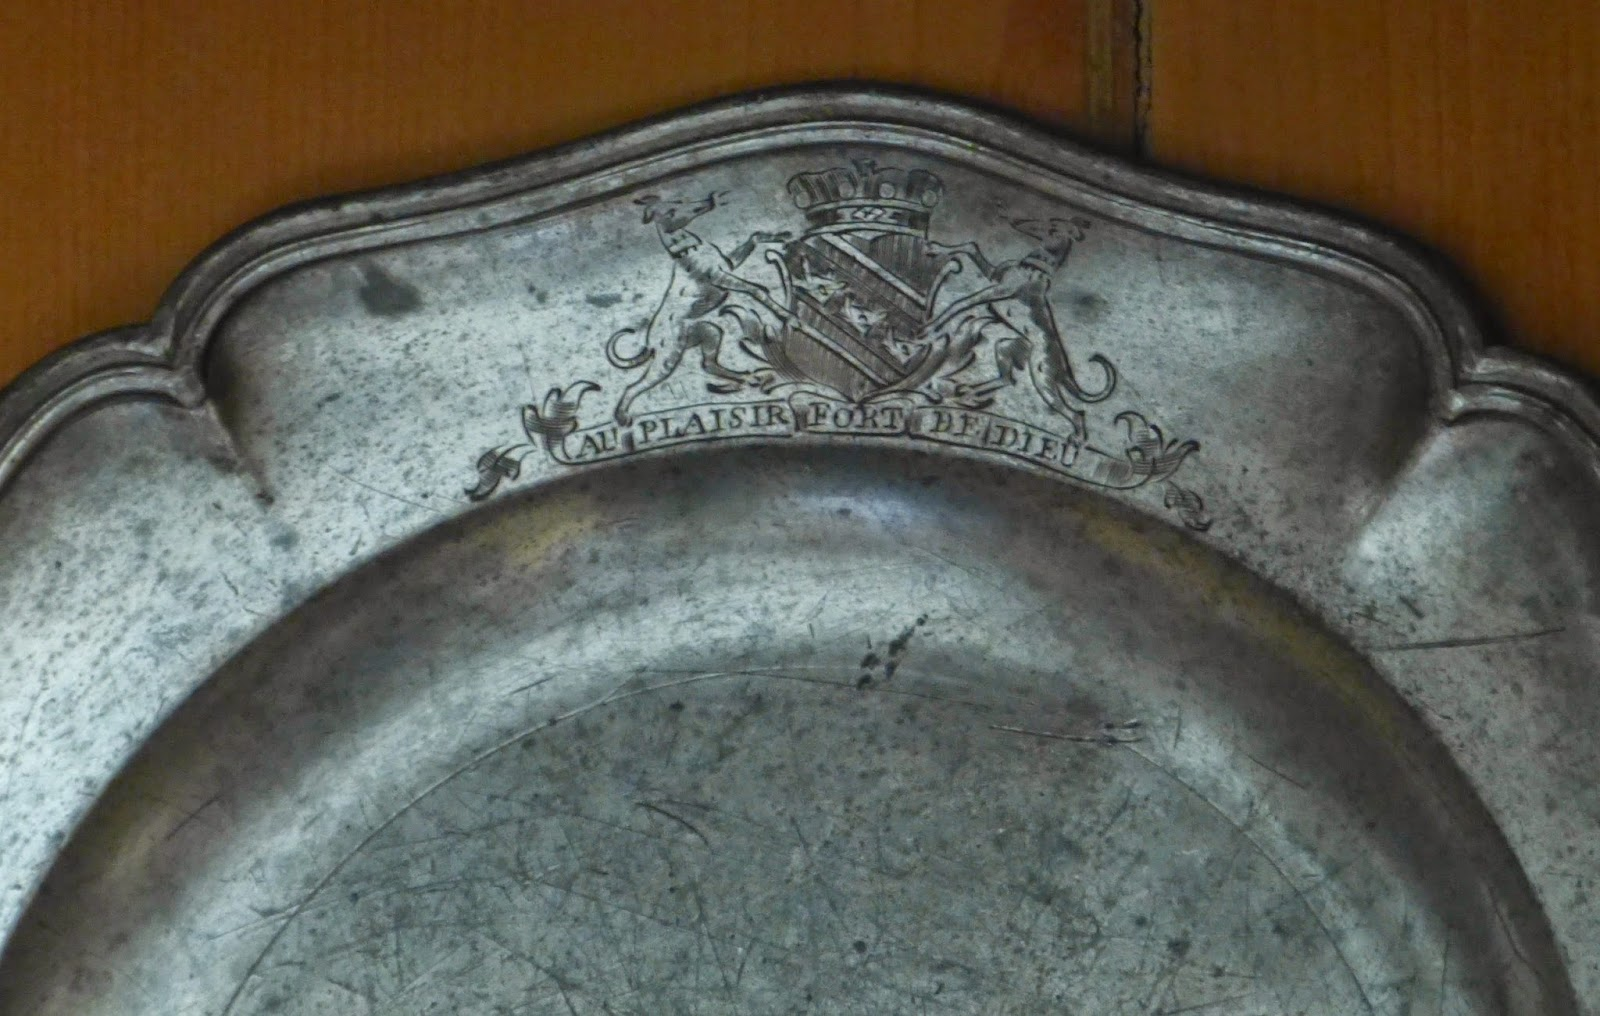 The old family pewter engraved with the Edgcumbe coat of arms